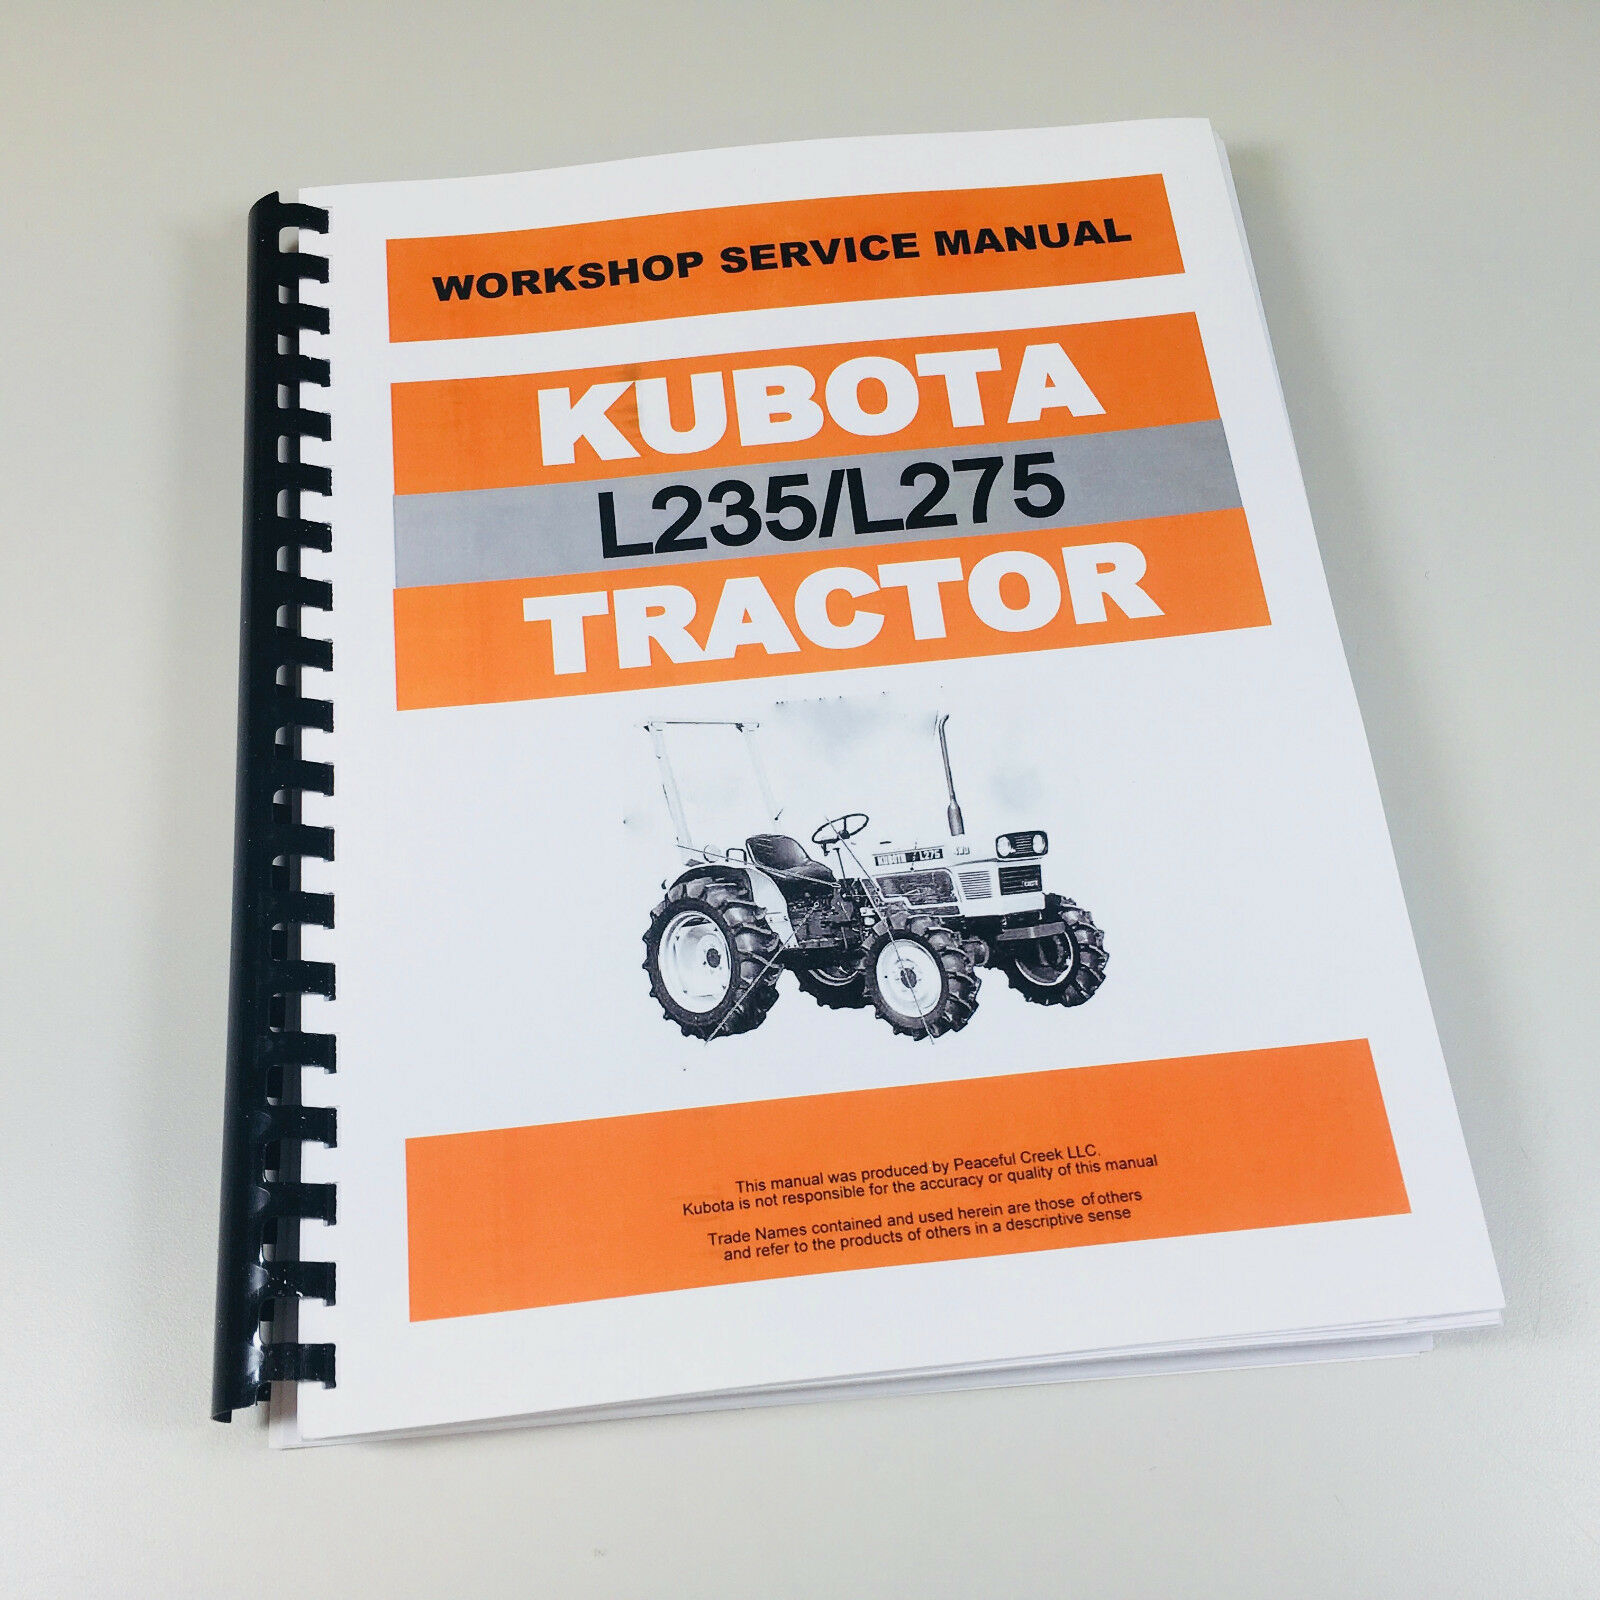 Kubota L235 L275 Tractor Service Repair Manual Technical Shop Book Overhaul  1 of 8FREE Shipping ...